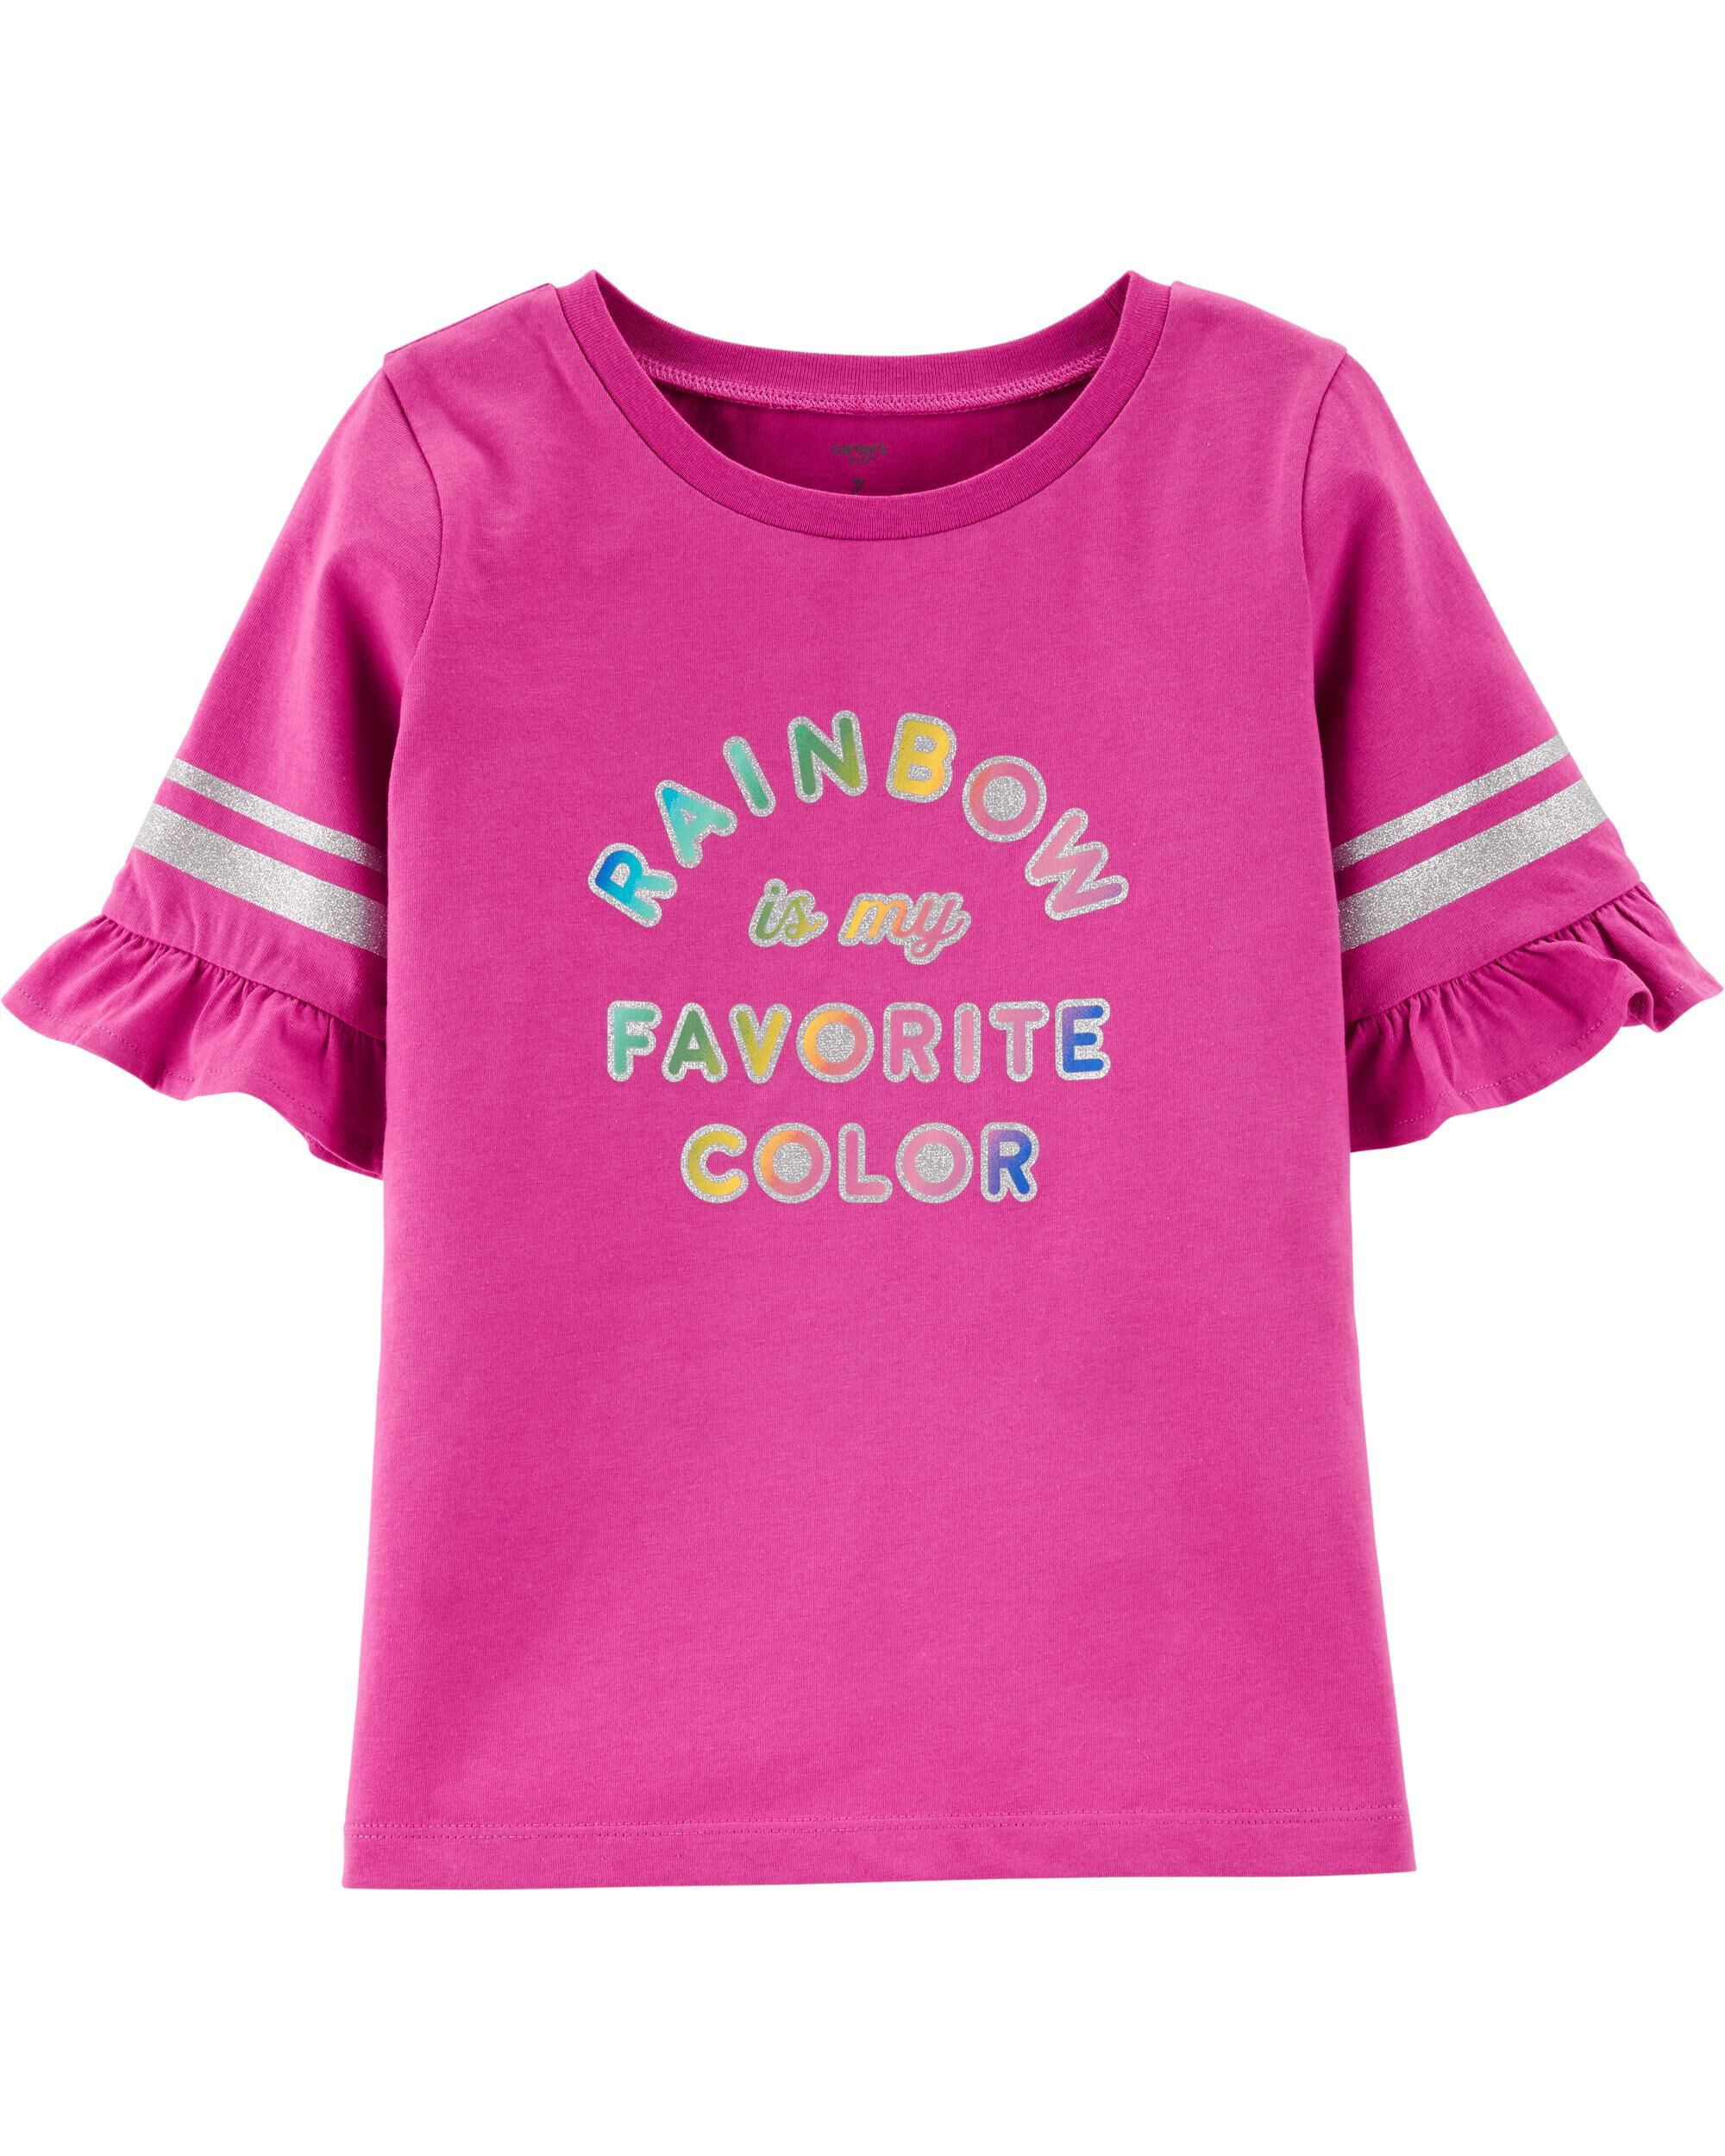 Rainbow is My Favorite Color Toddler T Shirt